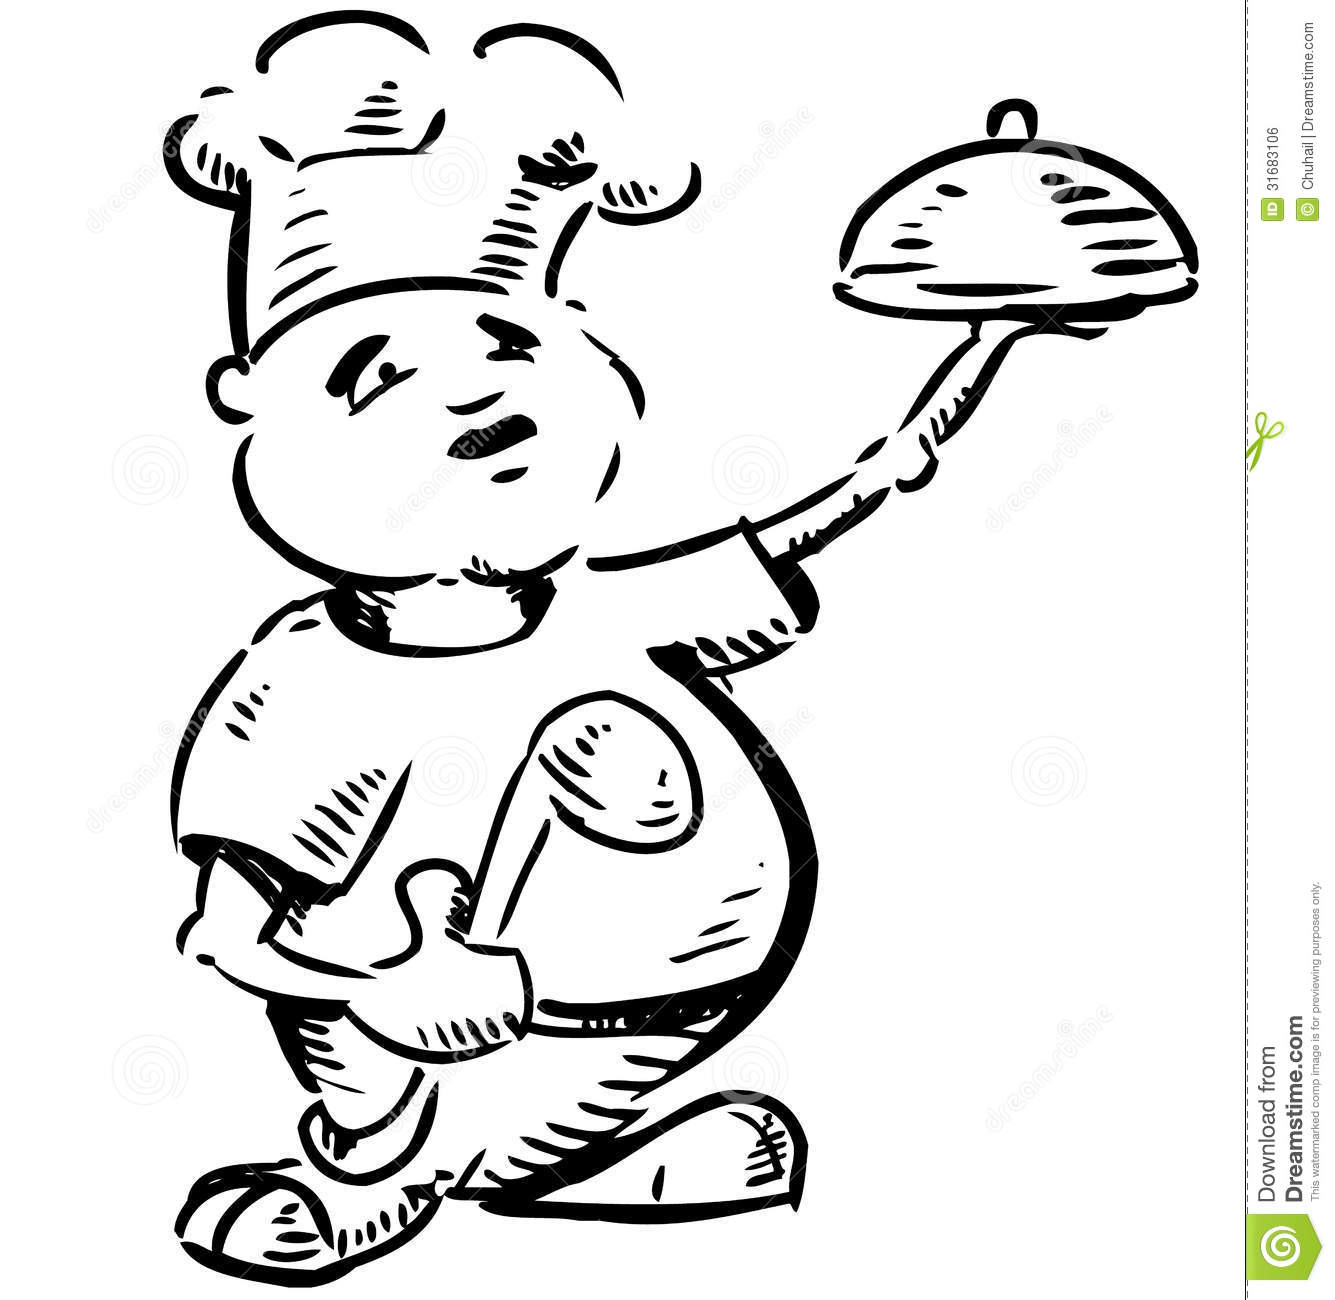 Chef With Tray Of Food In Hand Royalty Free Stock Image